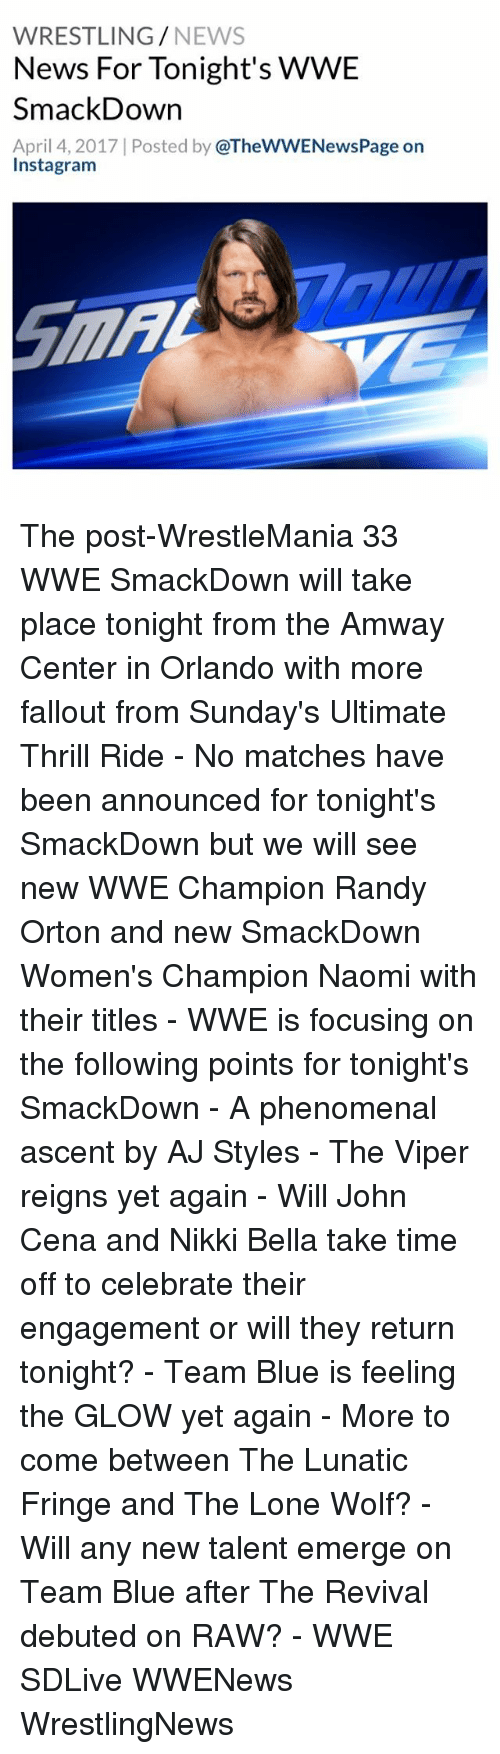 raw wwe: WRESTLING  NEWS  News For Tonight's WWE  SmackDown  April 4, 2017 Posted by @TheWWENewsPage on  Instagram The post-WrestleMania 33 WWE SmackDown will take place tonight from the Amway Center in Orlando with more fallout from Sunday's Ultimate Thrill Ride - No matches have been announced for tonight's SmackDown but we will see new WWE Champion Randy Orton and new SmackDown Women's Champion Naomi with their titles - WWE is focusing on the following points for tonight's SmackDown - A phenomenal ascent by AJ Styles - The Viper reigns yet again - Will John Cena and Nikki Bella take time off to celebrate their engagement or will they return tonight? - Team Blue is feeling the GLOW yet again - More to come between The Lunatic Fringe and The Lone Wolf? - Will any new talent emerge on Team Blue after The Revival debuted on RAW? - WWE SDLive WWENews WrestlingNews